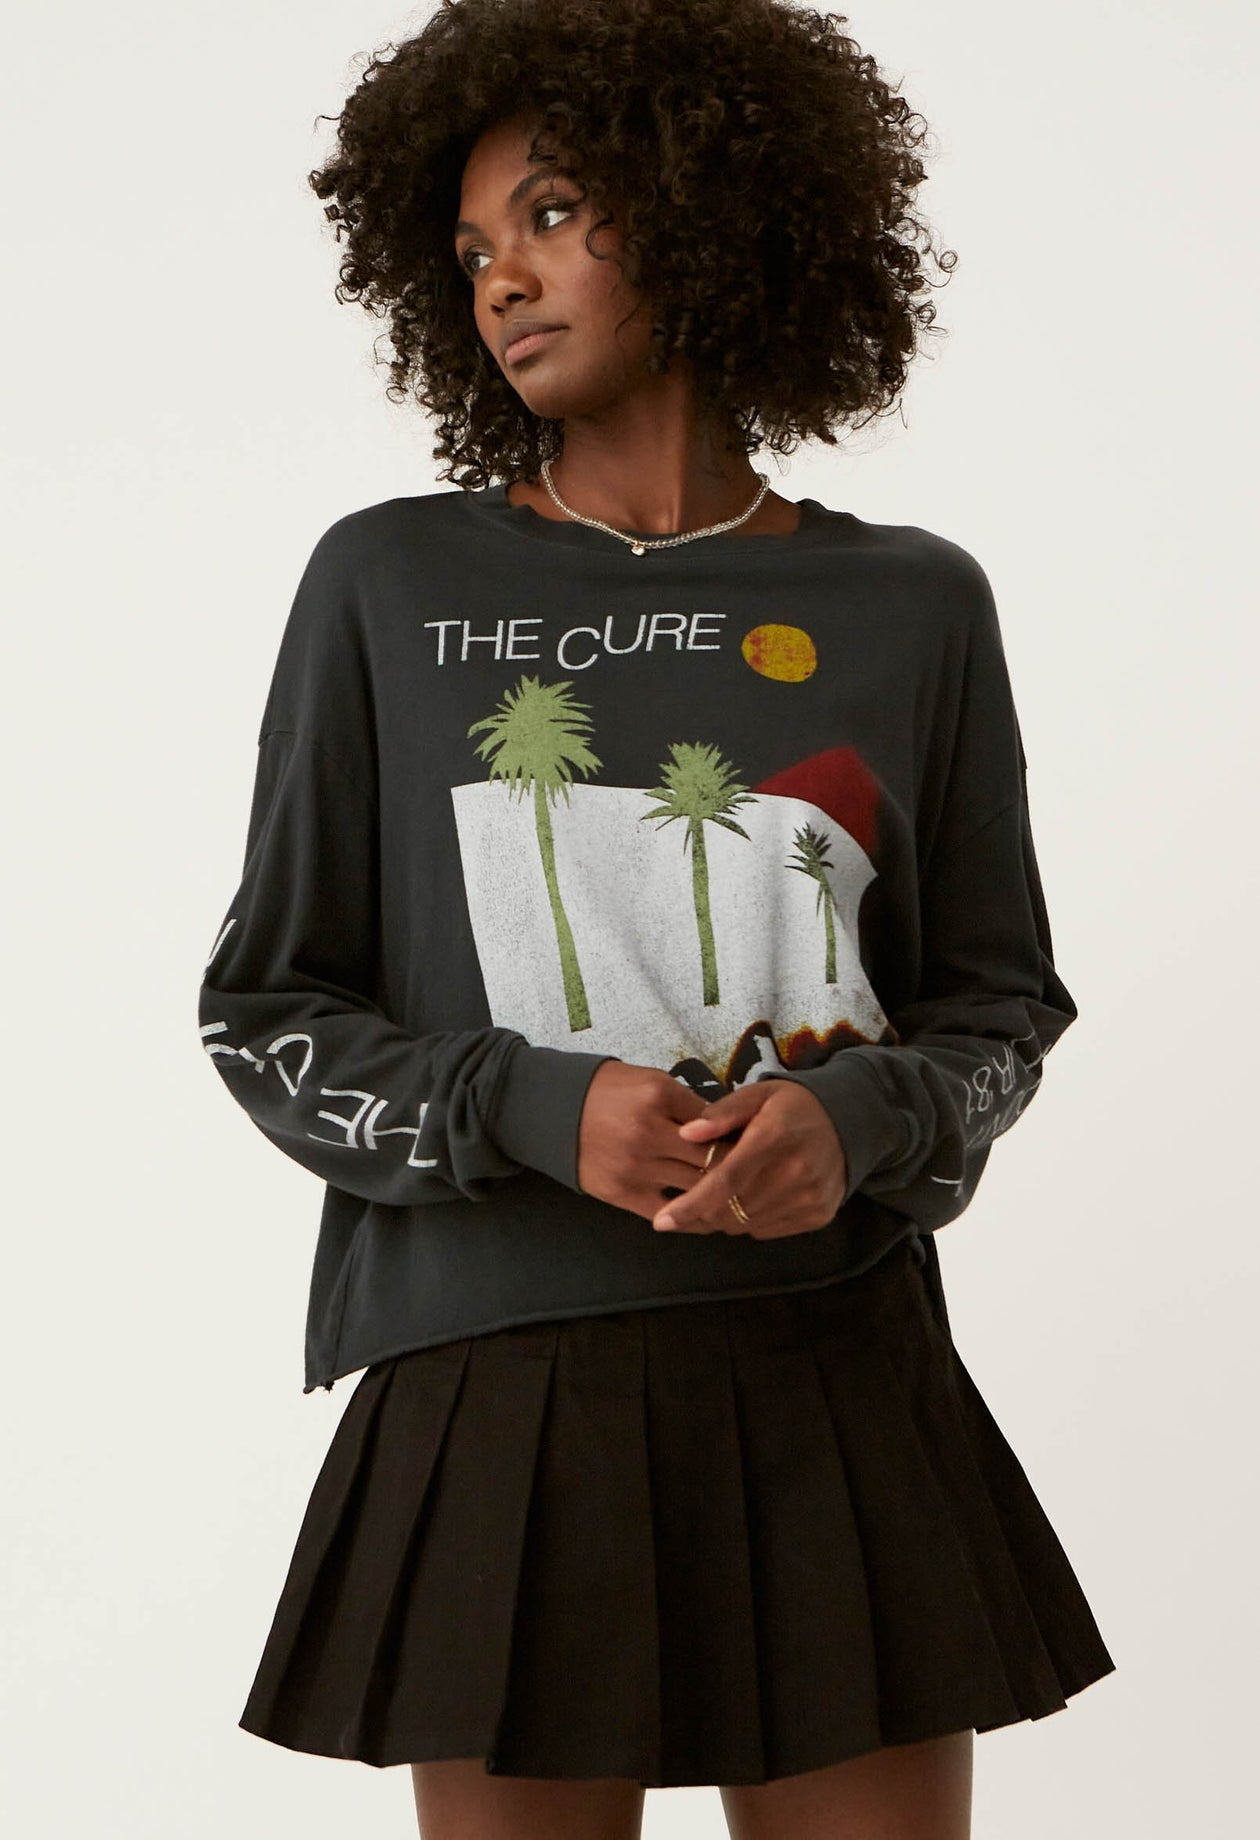 The Cure Boys Don't Cry Long Sleeve Crop - Vintage Black | Daydreamer LA - Women's Clothing